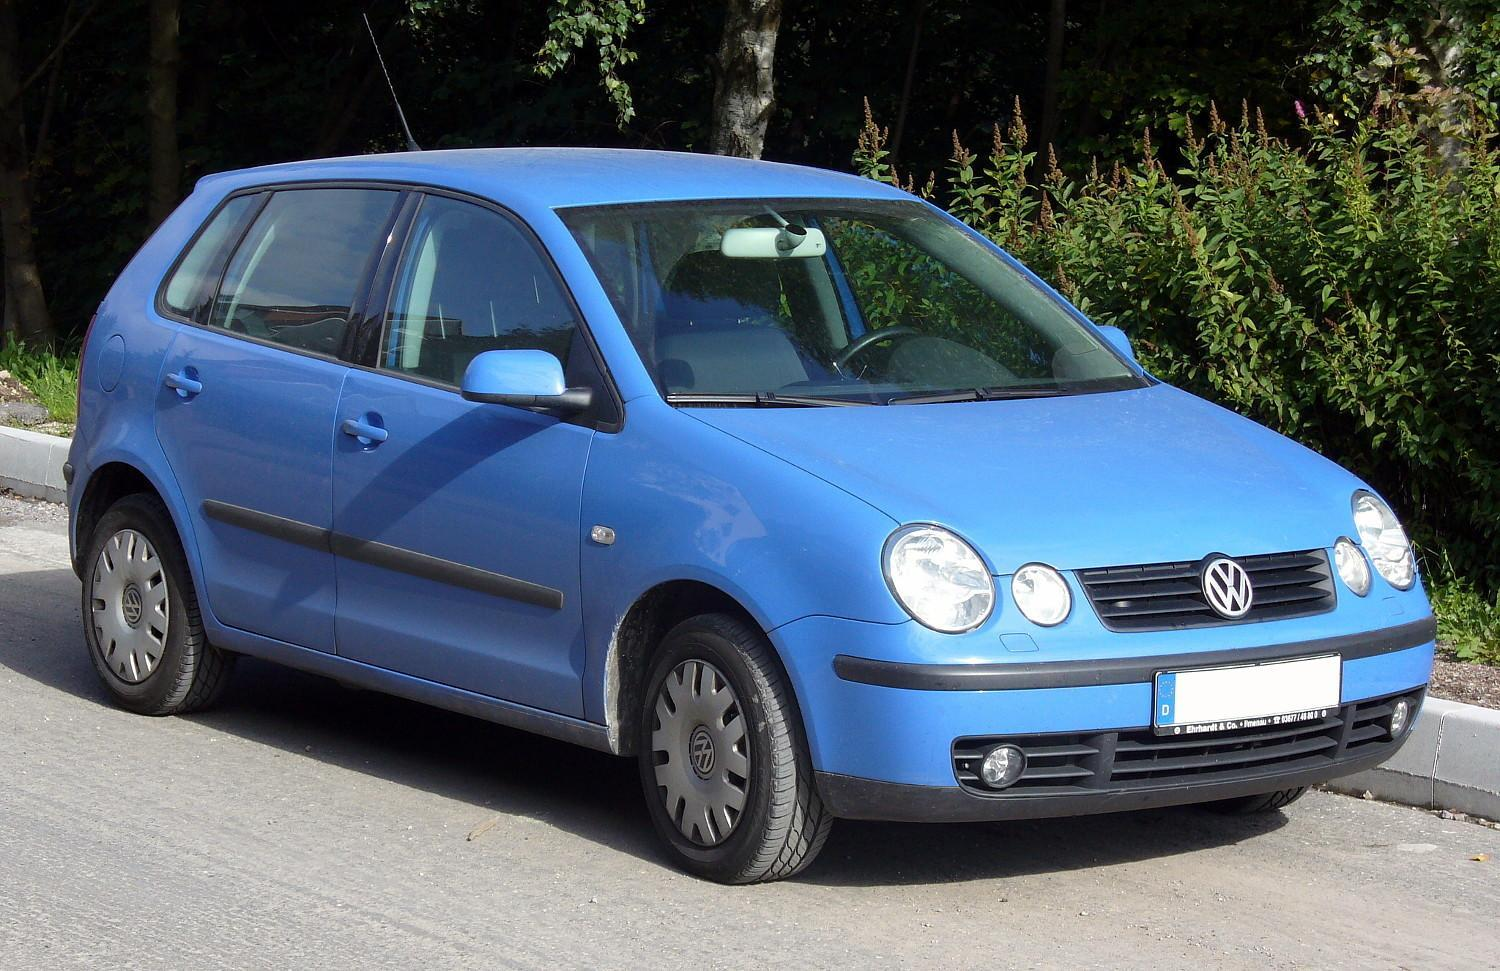 VW Polo photo 12